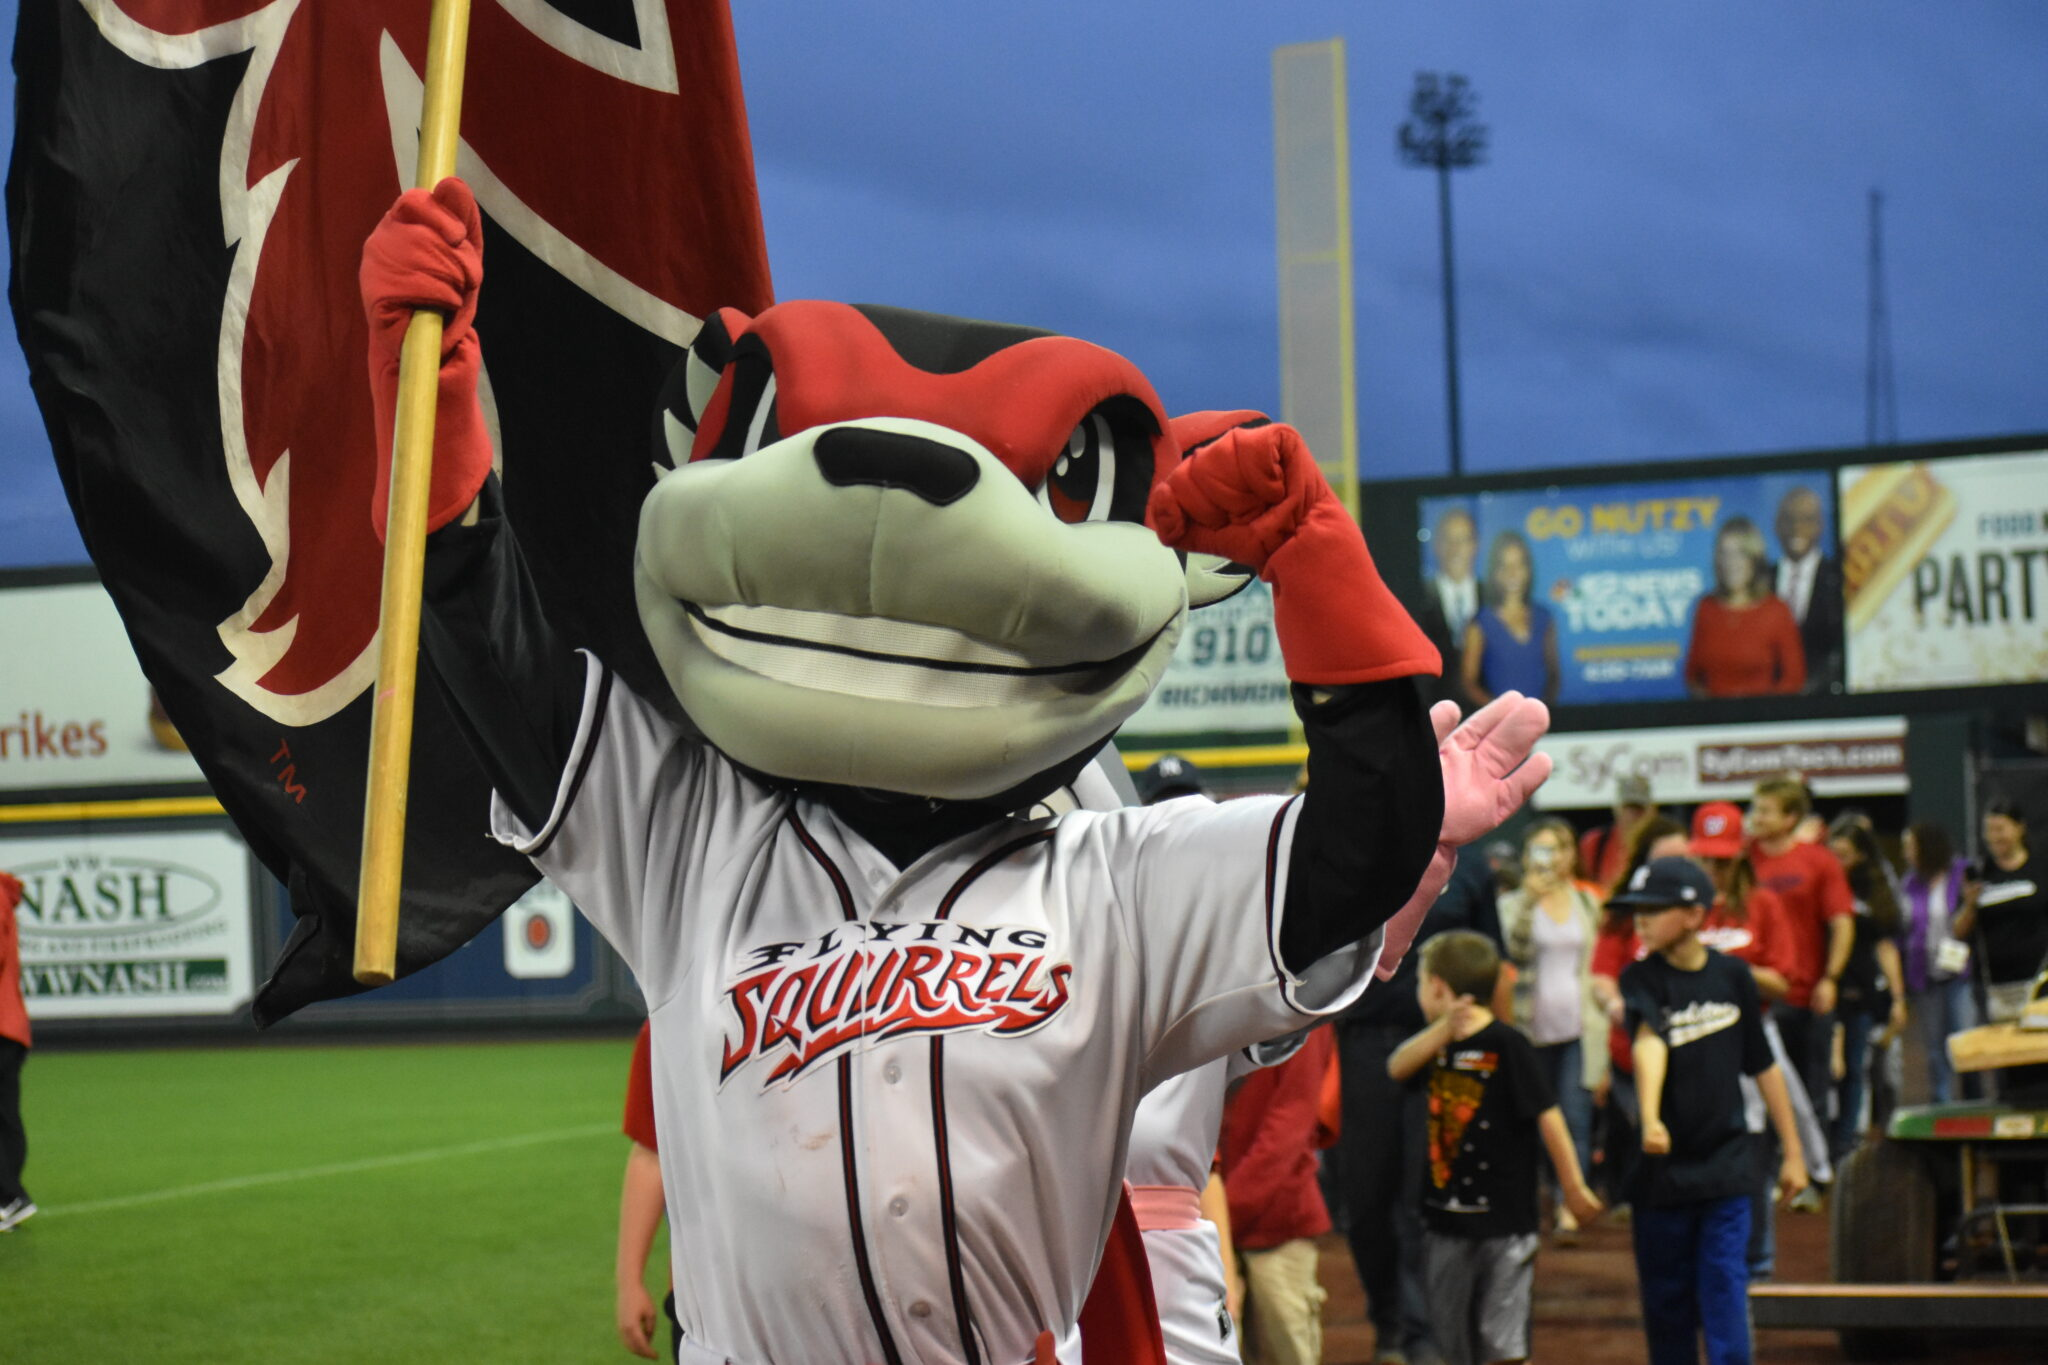 Richmond Flying Squirrels Nutsy